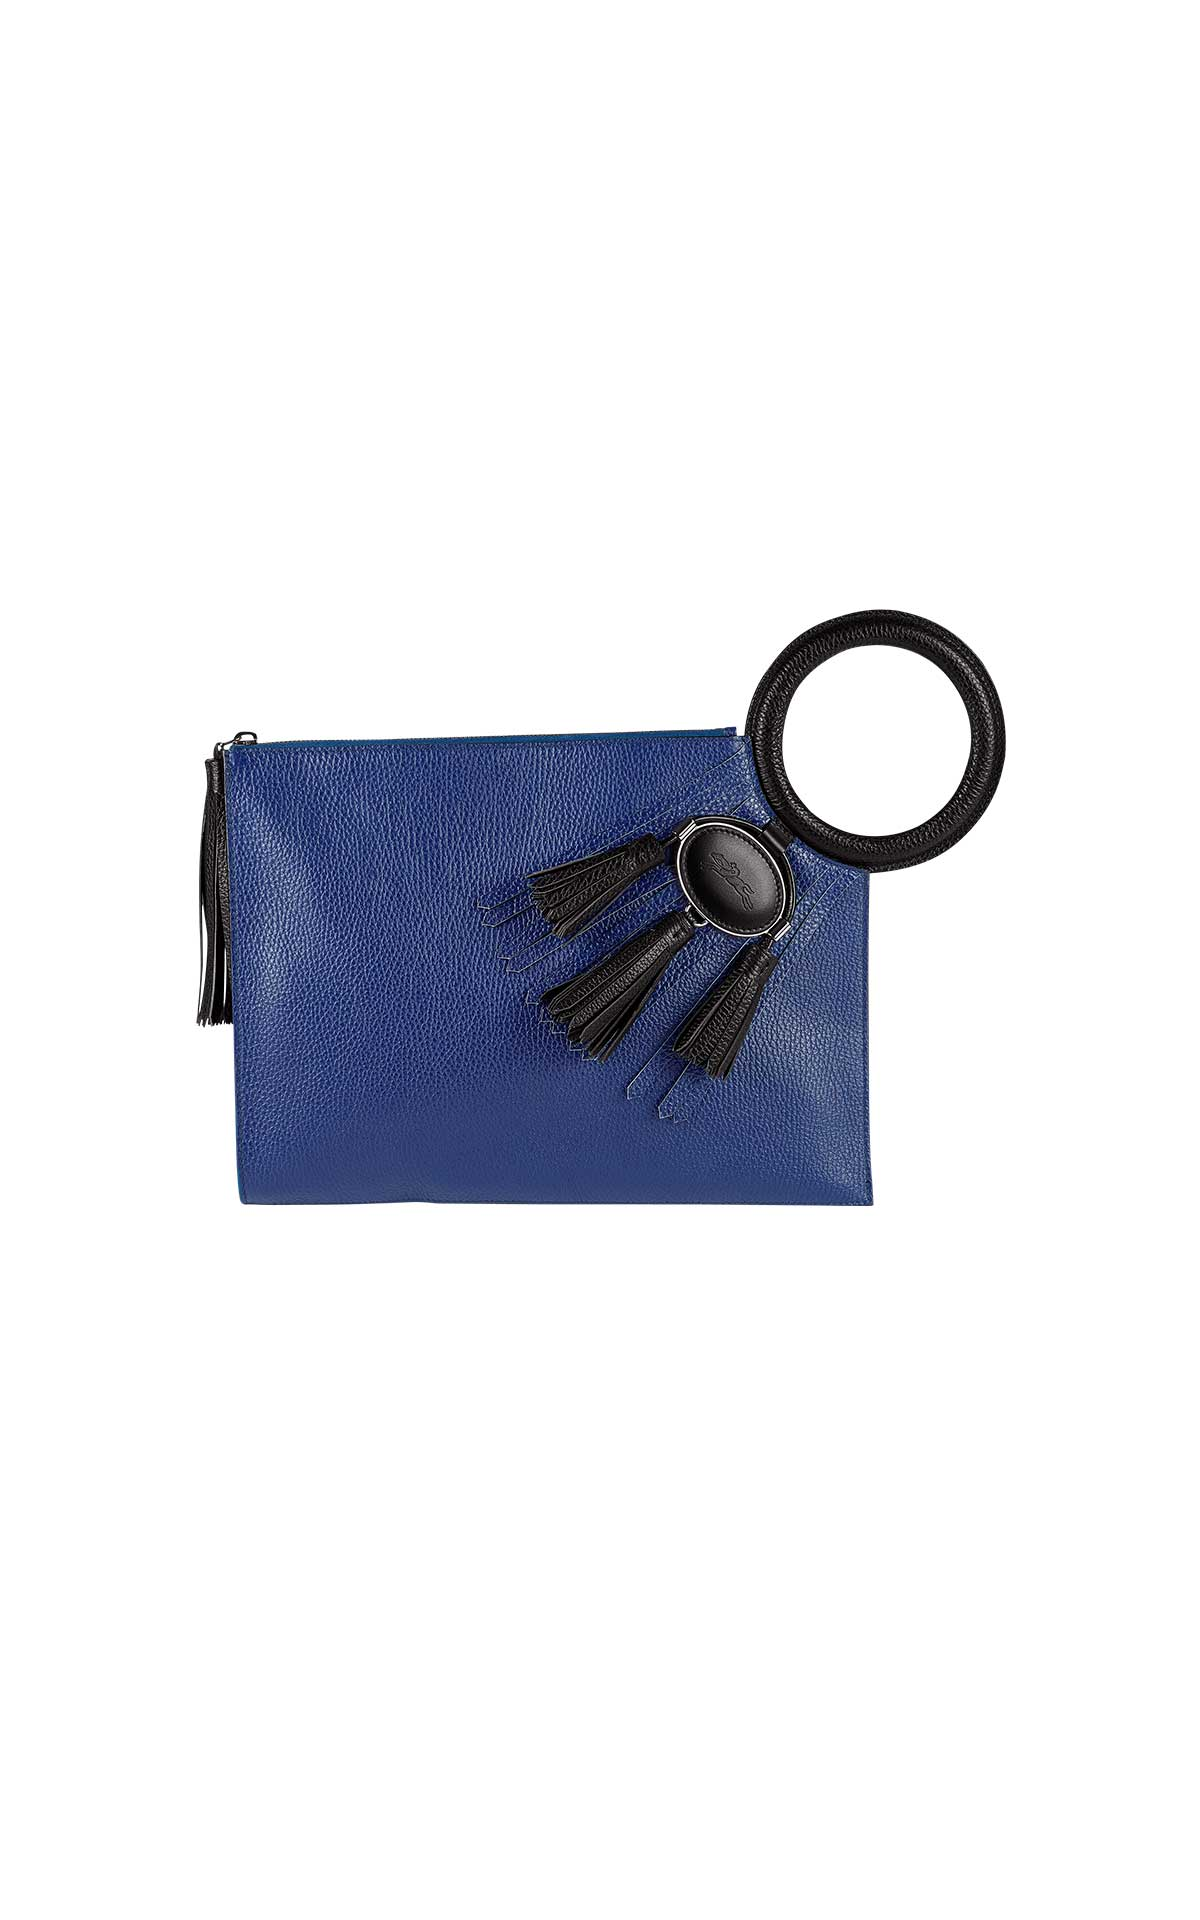 Blue handbag Longchamp